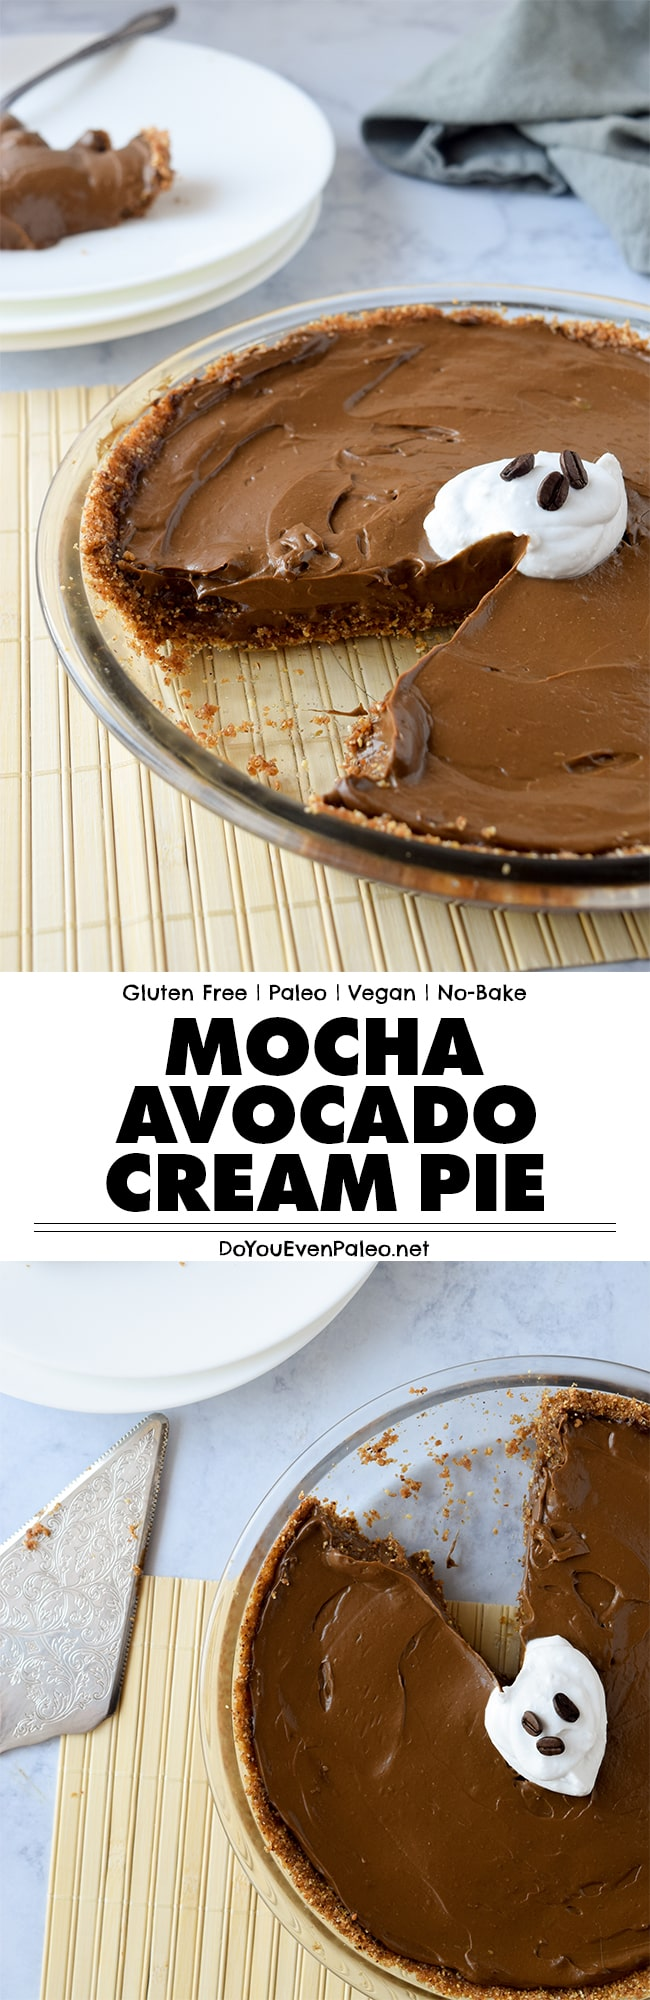 Mocha Avocado Cream Pie - a simple, no bake dessert recipe featuring avocados, chocolate and cold brew coffee! Using avocado pudding as a base, this healthy recipe is gluten free, paleo, clean eating, and uses only a few ingredients. | DoYouEvenPaleo.net #paleo #glutenfree #doyouevenpaleo